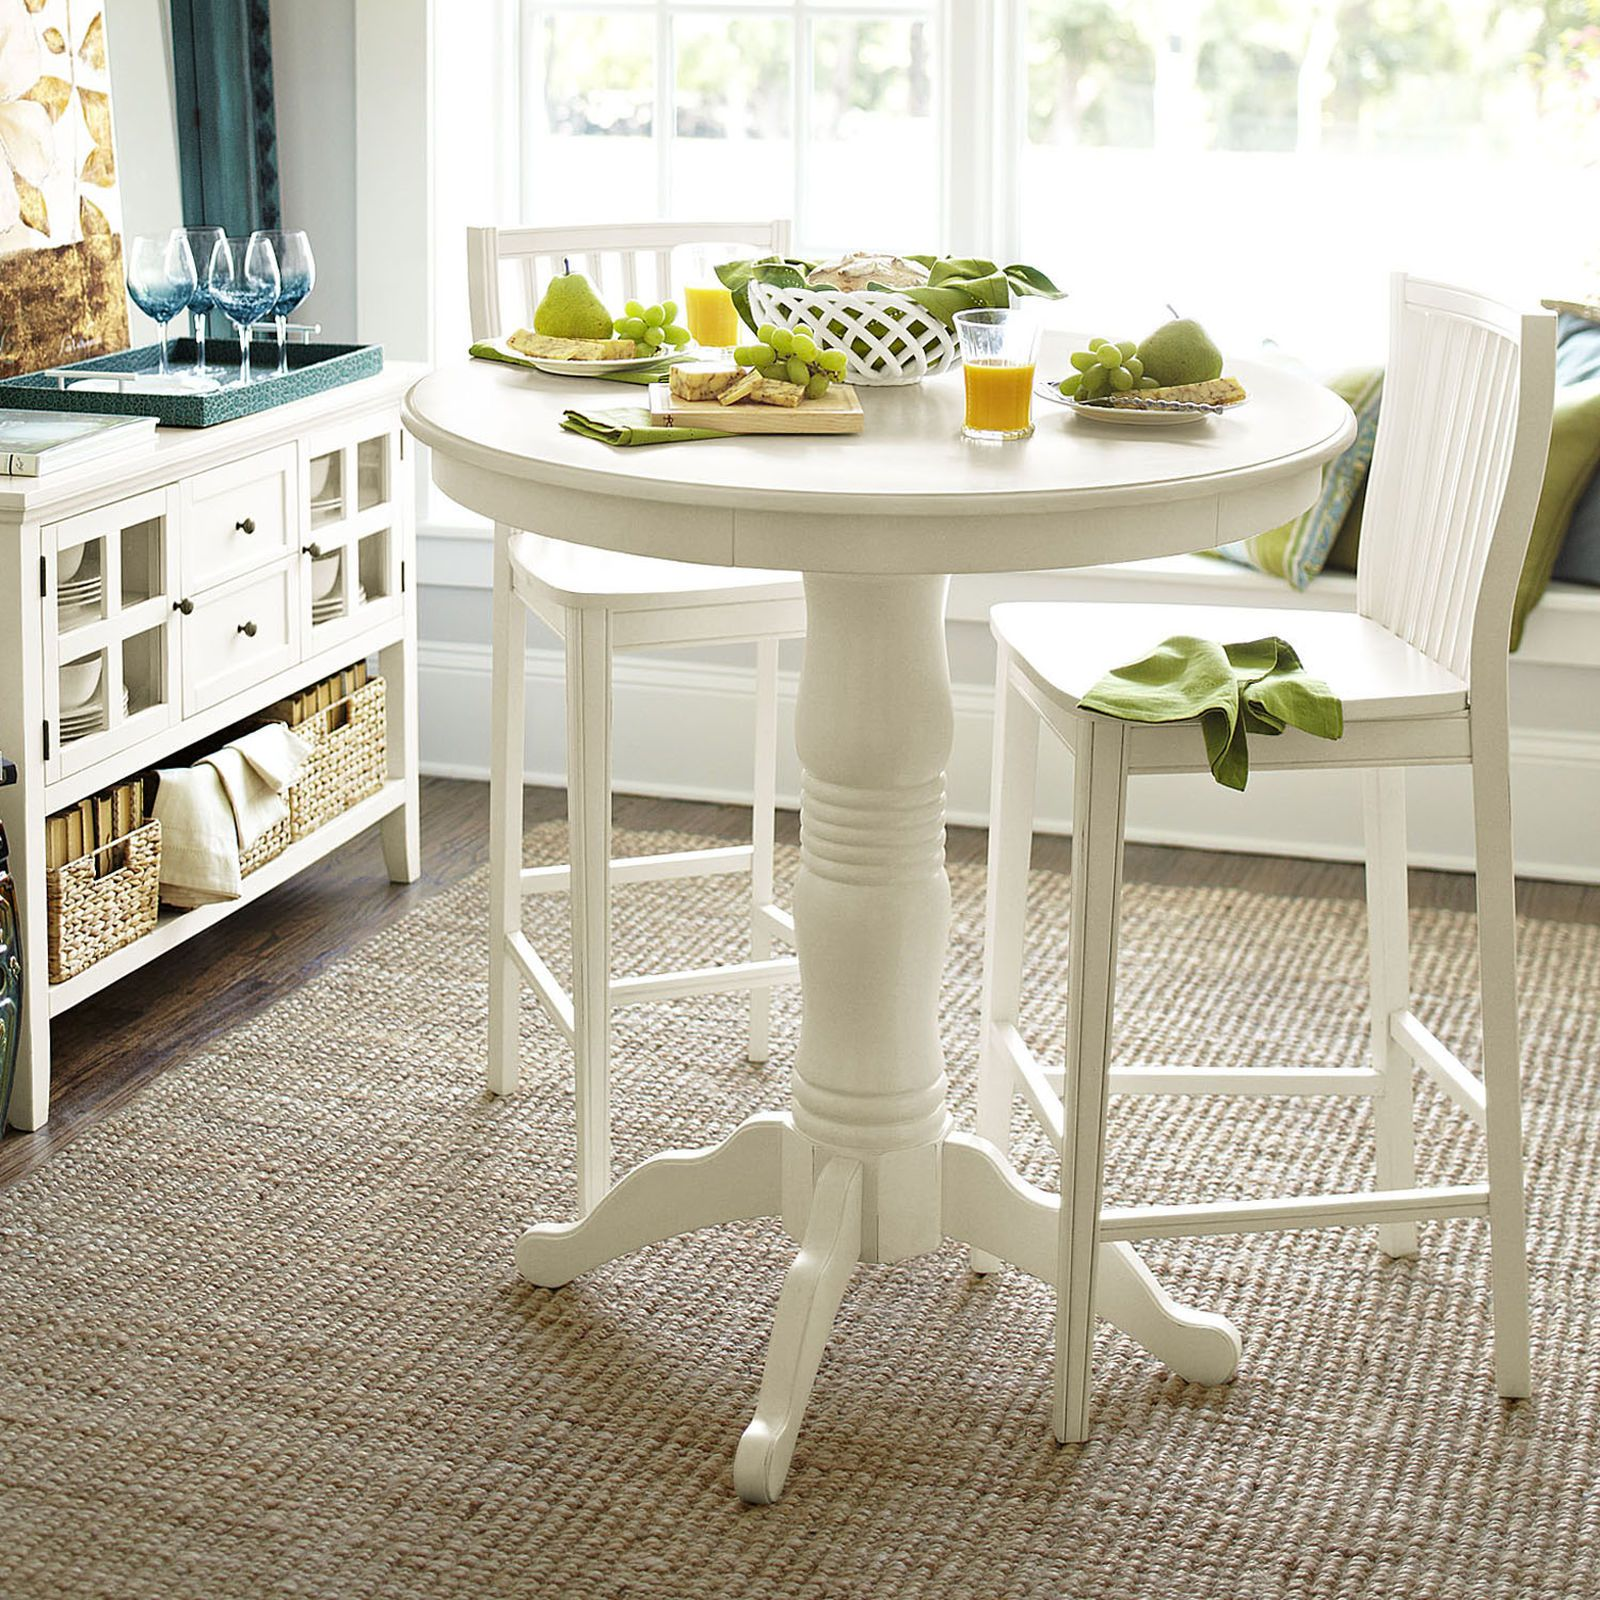 Incroyable Nice White Bistro Table And Chairs , Good White Bistro Table And Chairs 30  About Remodel Small Home Decoration Ideas With White Bistro Table And  Chairs ...